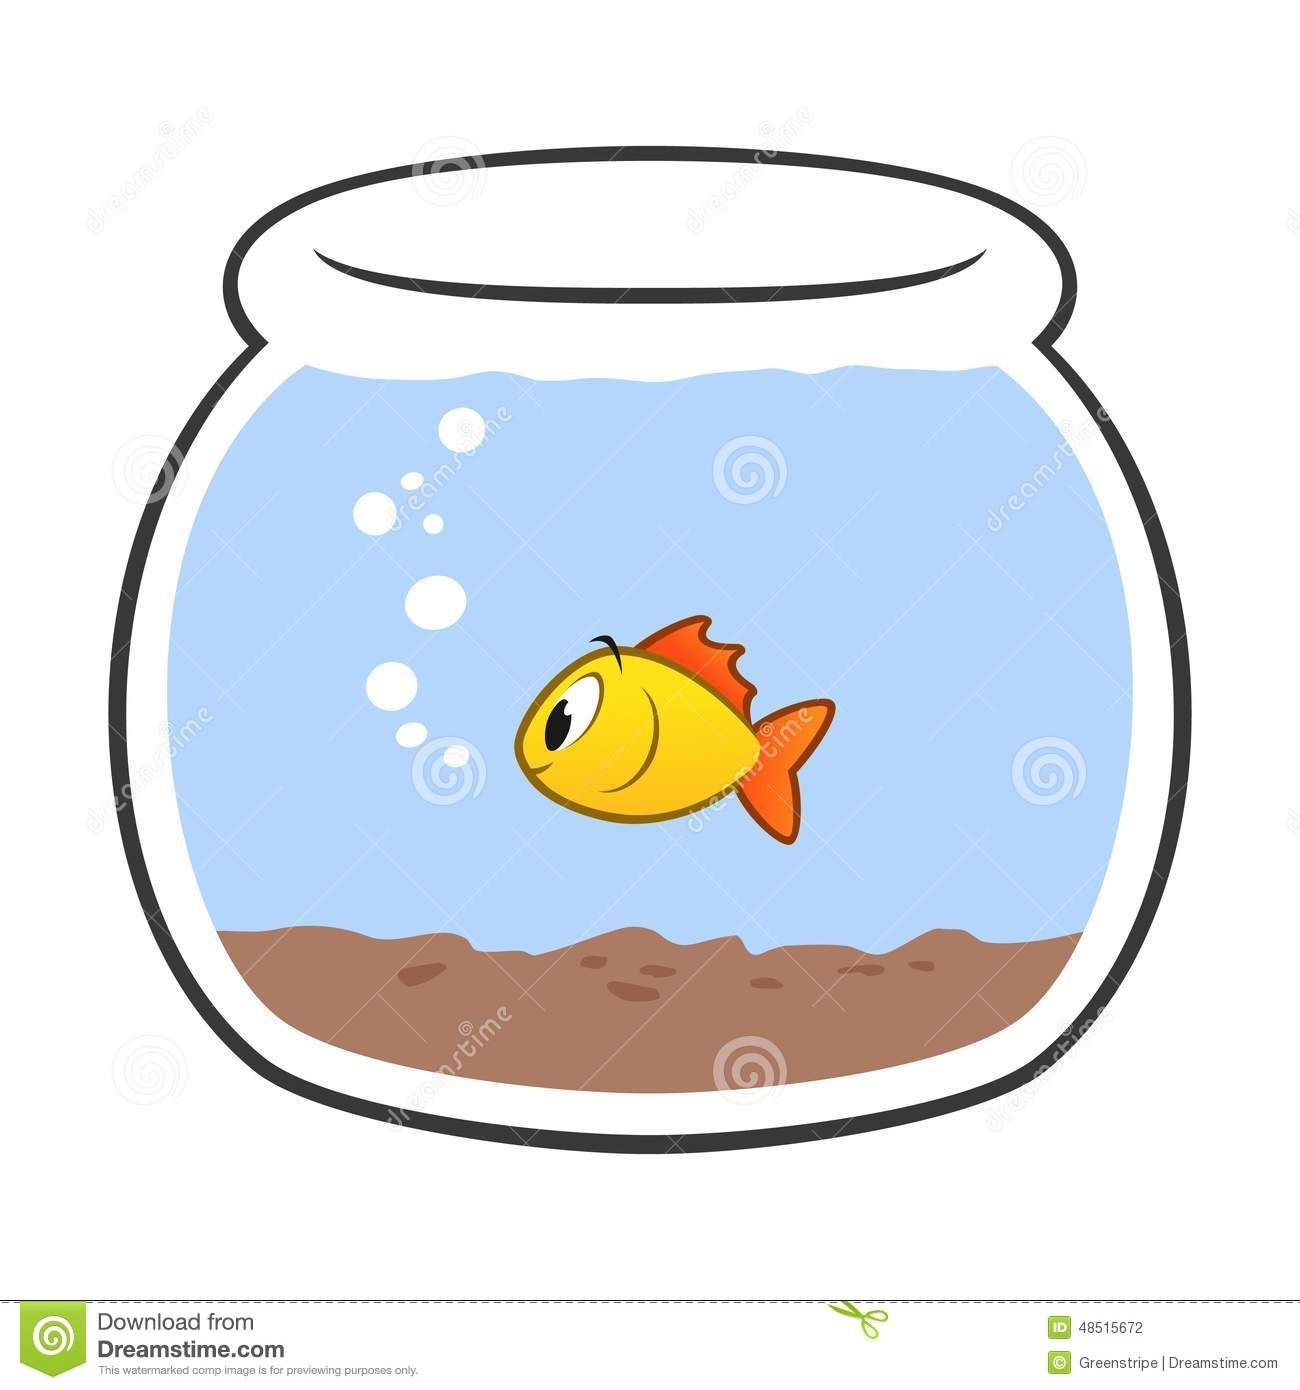 1300x1390 Fishbowl Clipart Goldfish Fish Bowl Clip Art Royalty Free Stock